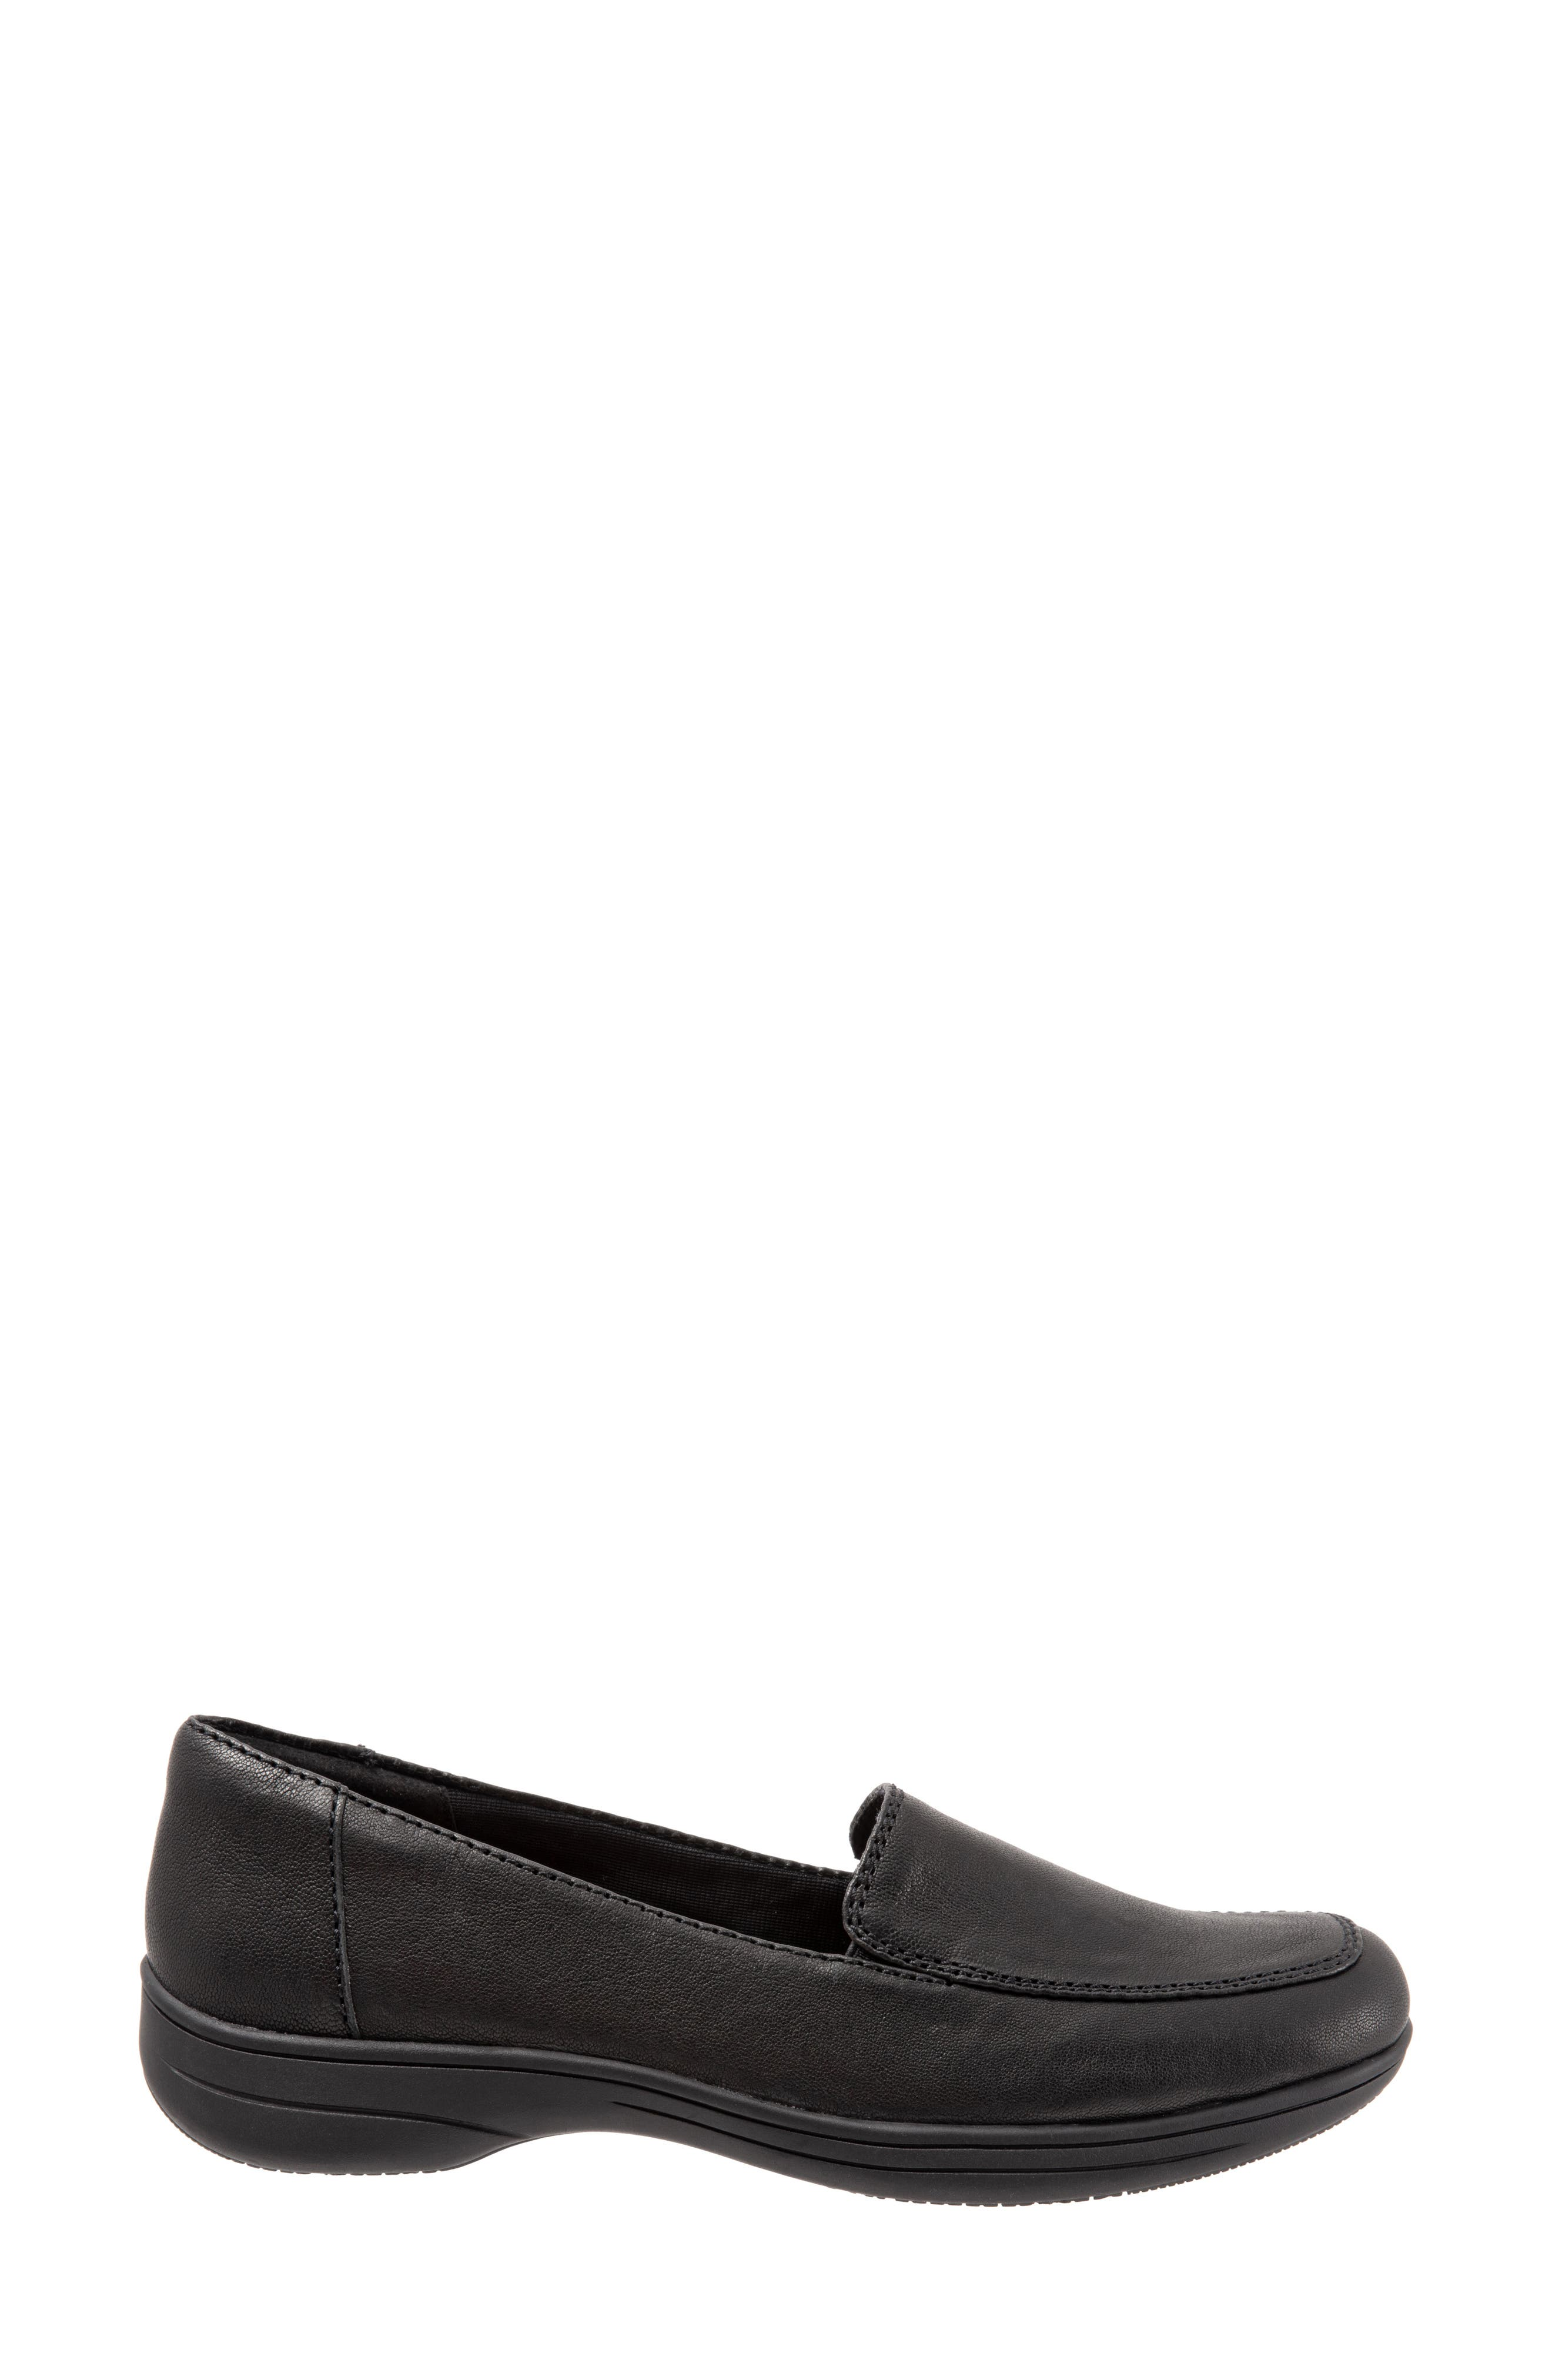 Jacob Loafer,                             Alternate thumbnail 3, color,                             BLACK LEATHER